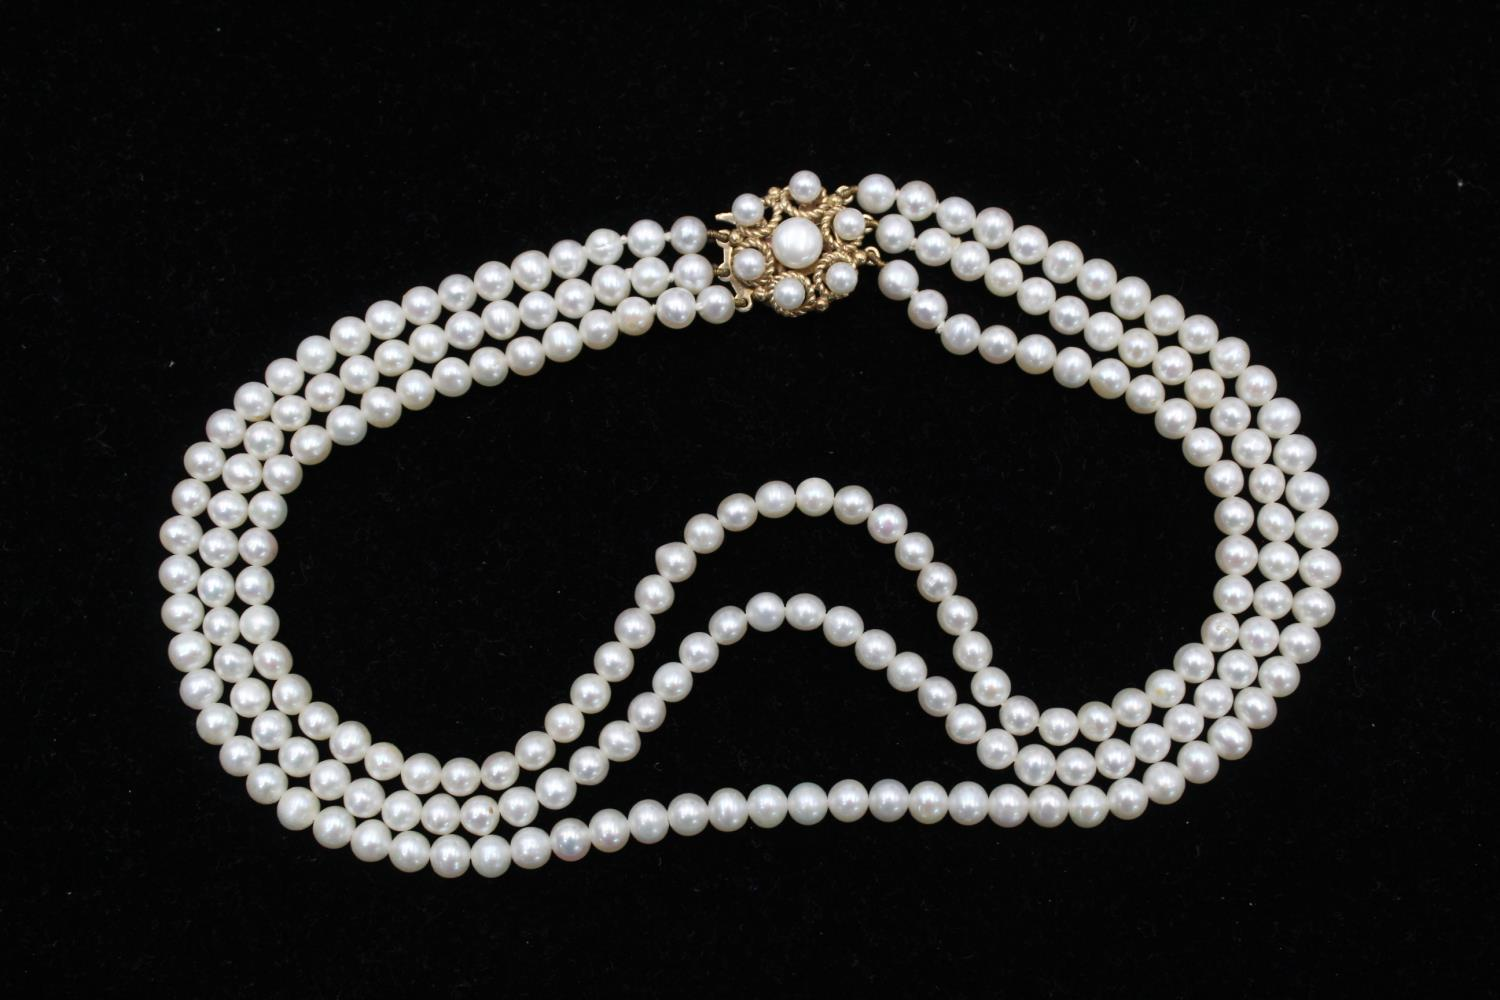 9ct Gold clasp pearl multi strand choker necklace 40.2g - Image 2 of 5